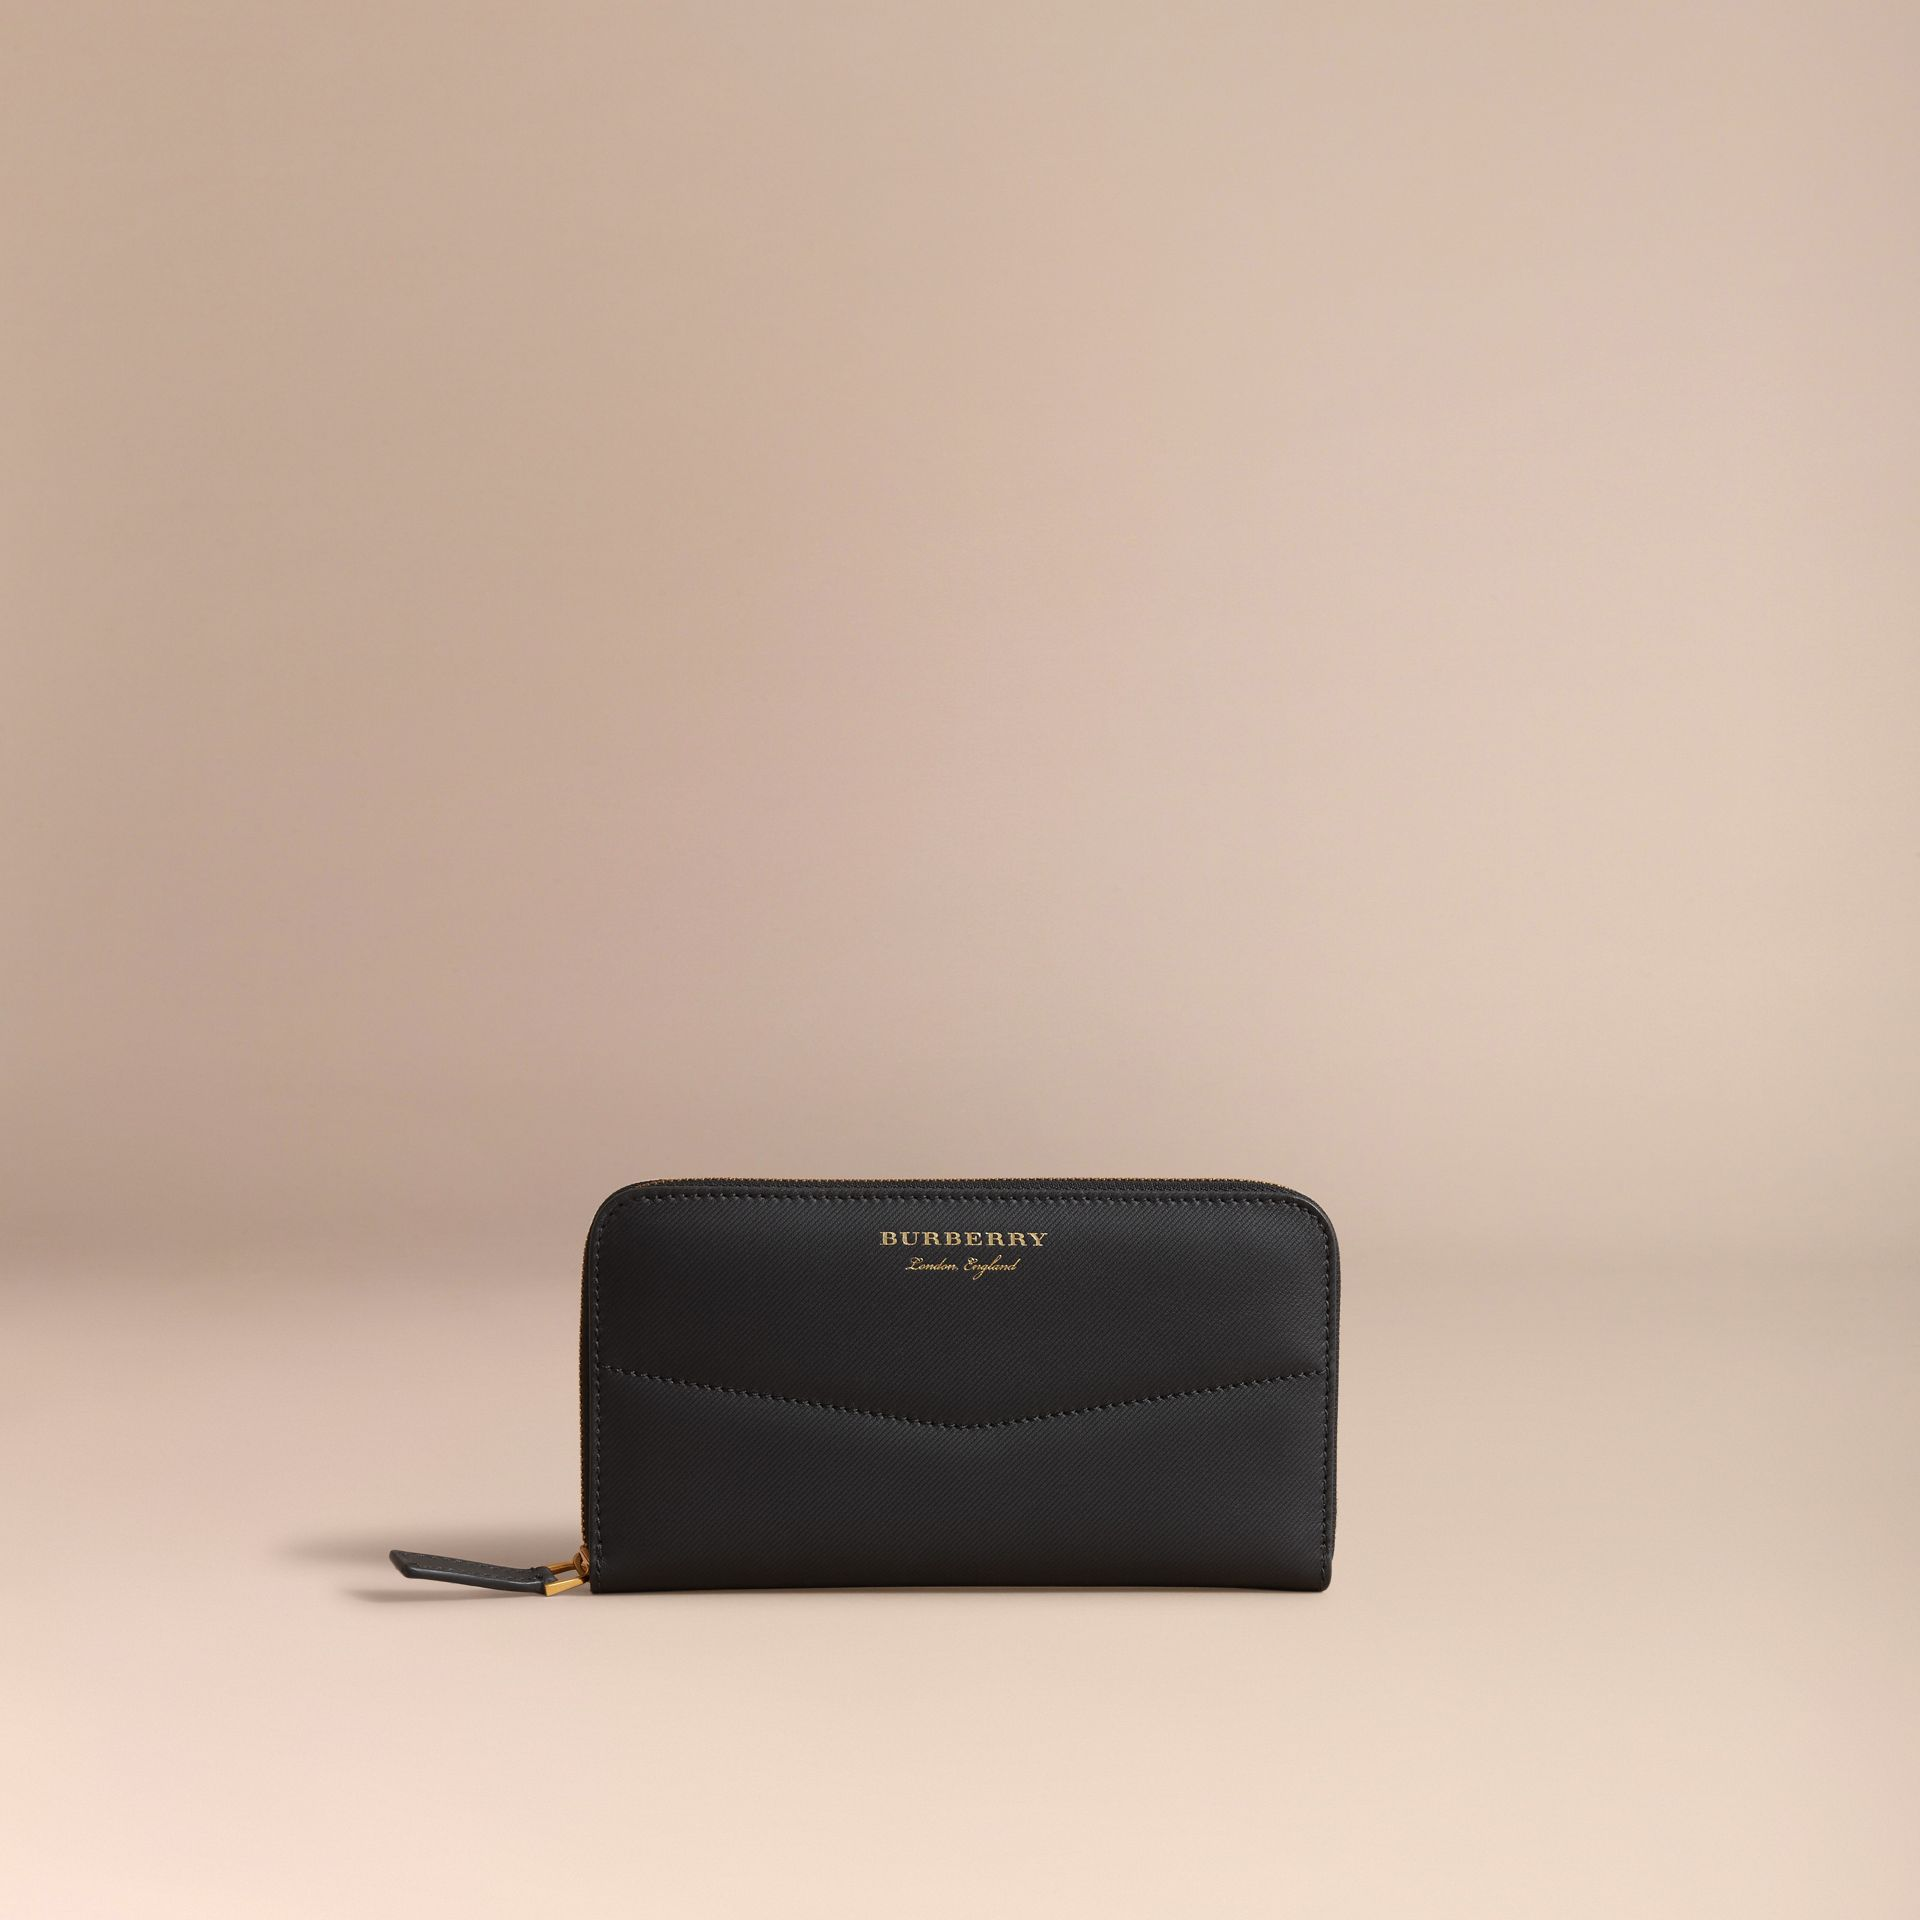 Trench Leather Ziparound Wallet in Black - Women | Burberry - gallery image 6